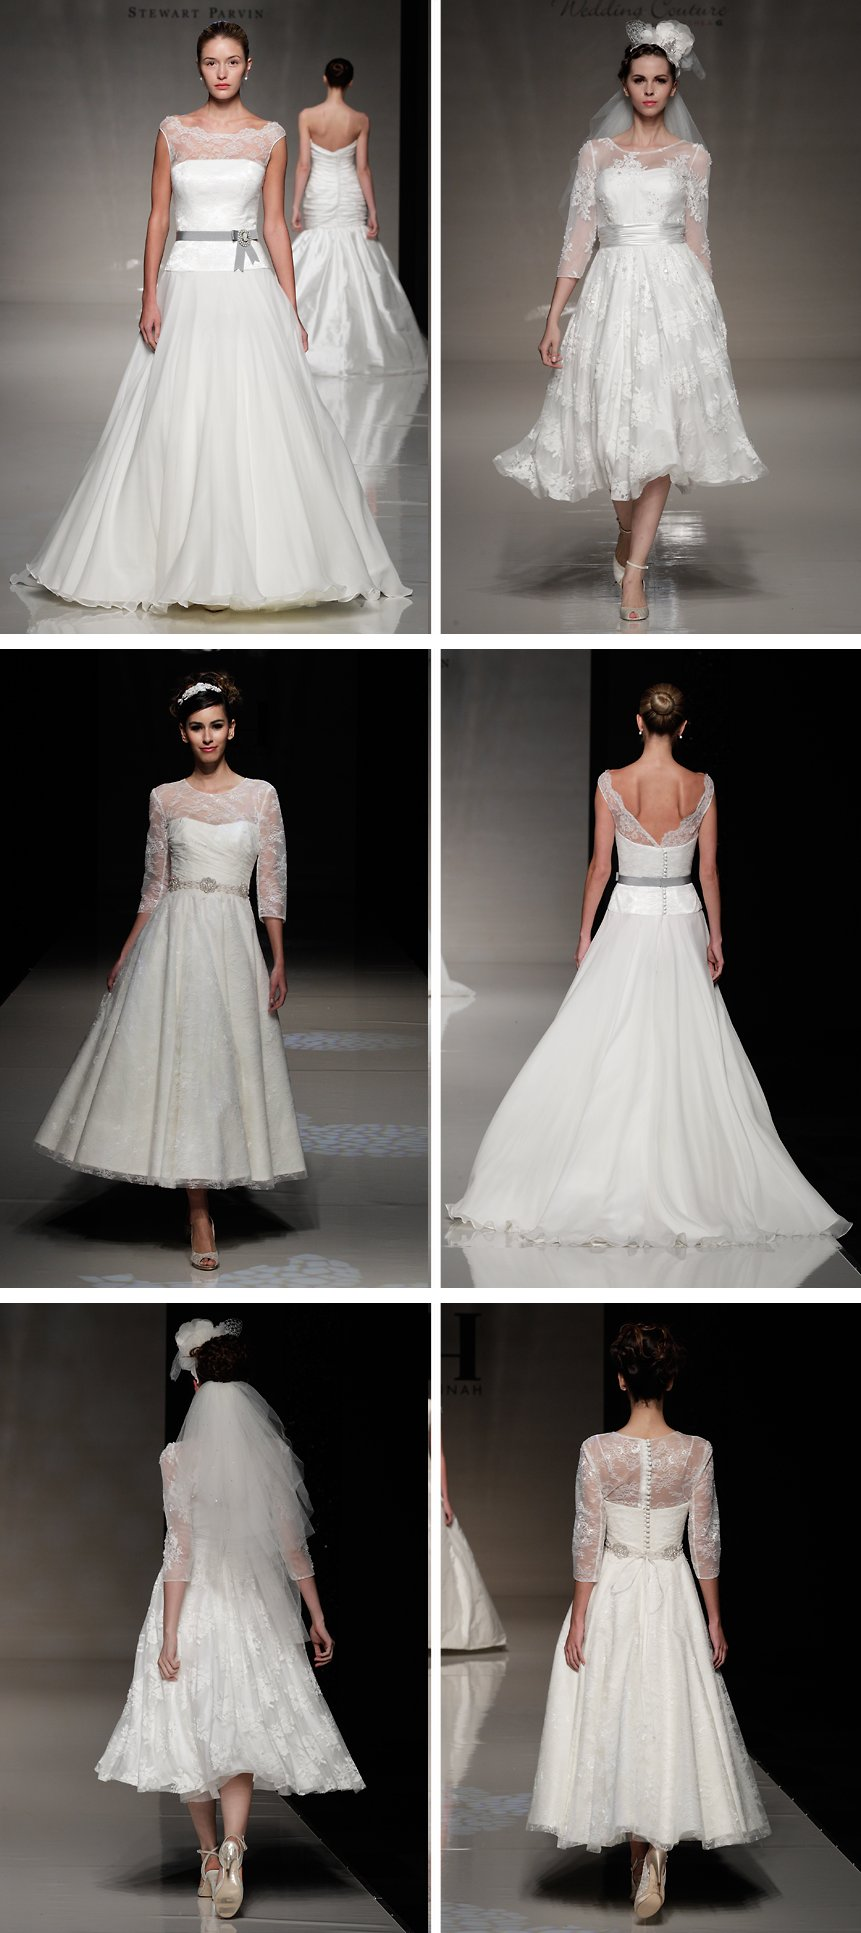 2013-wedding-dresses-bridal-gown-inspiration-white-gallery-london-illusion-neckline.full